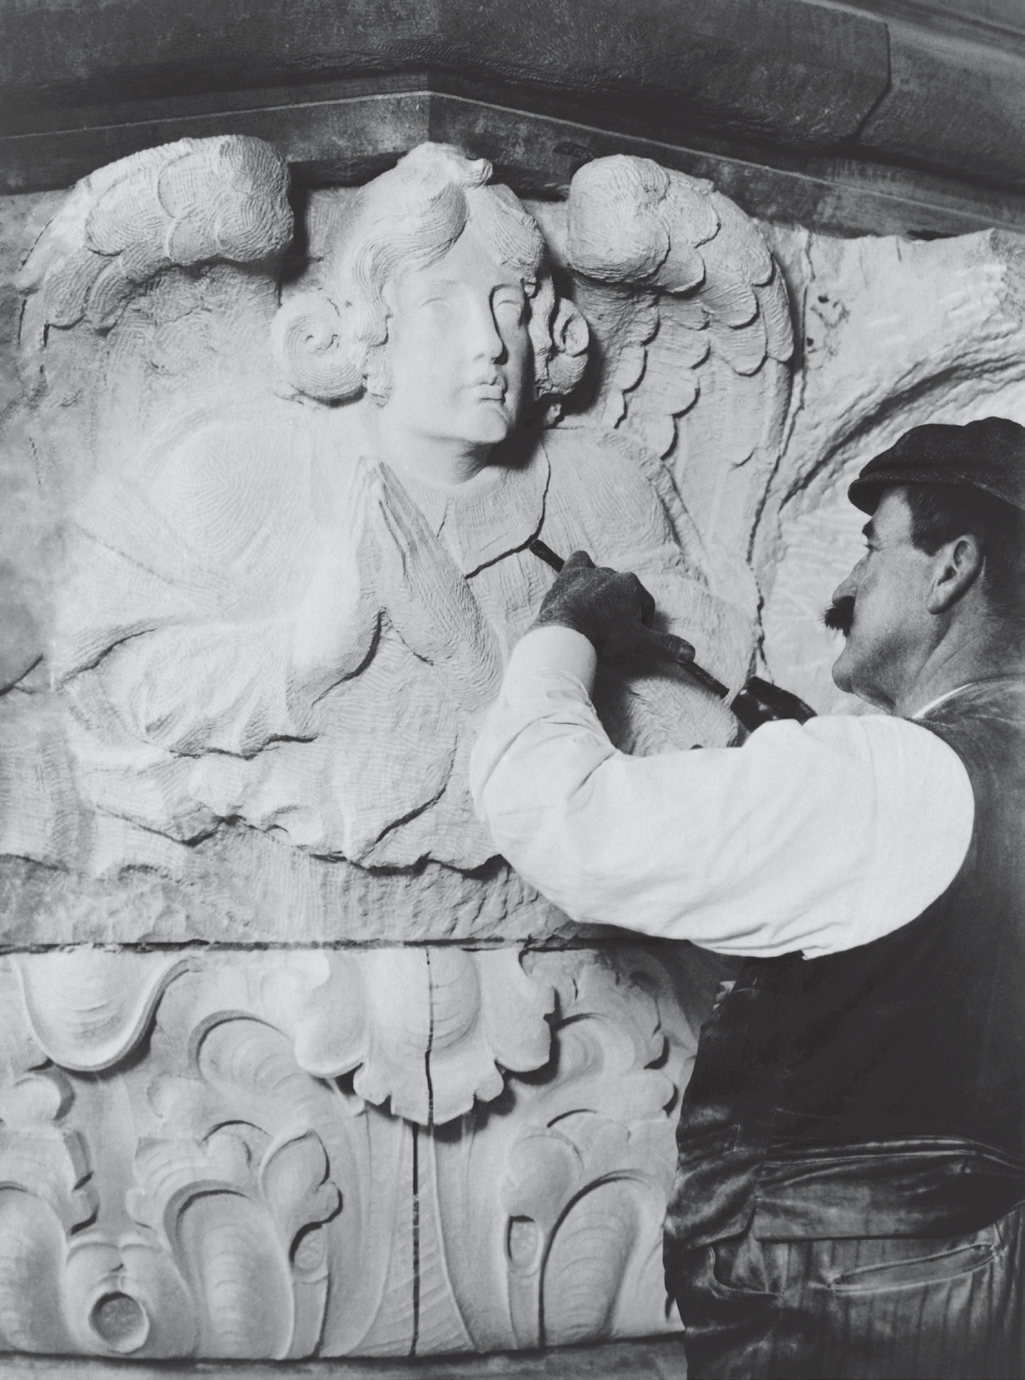 Sculptor Carving Stone